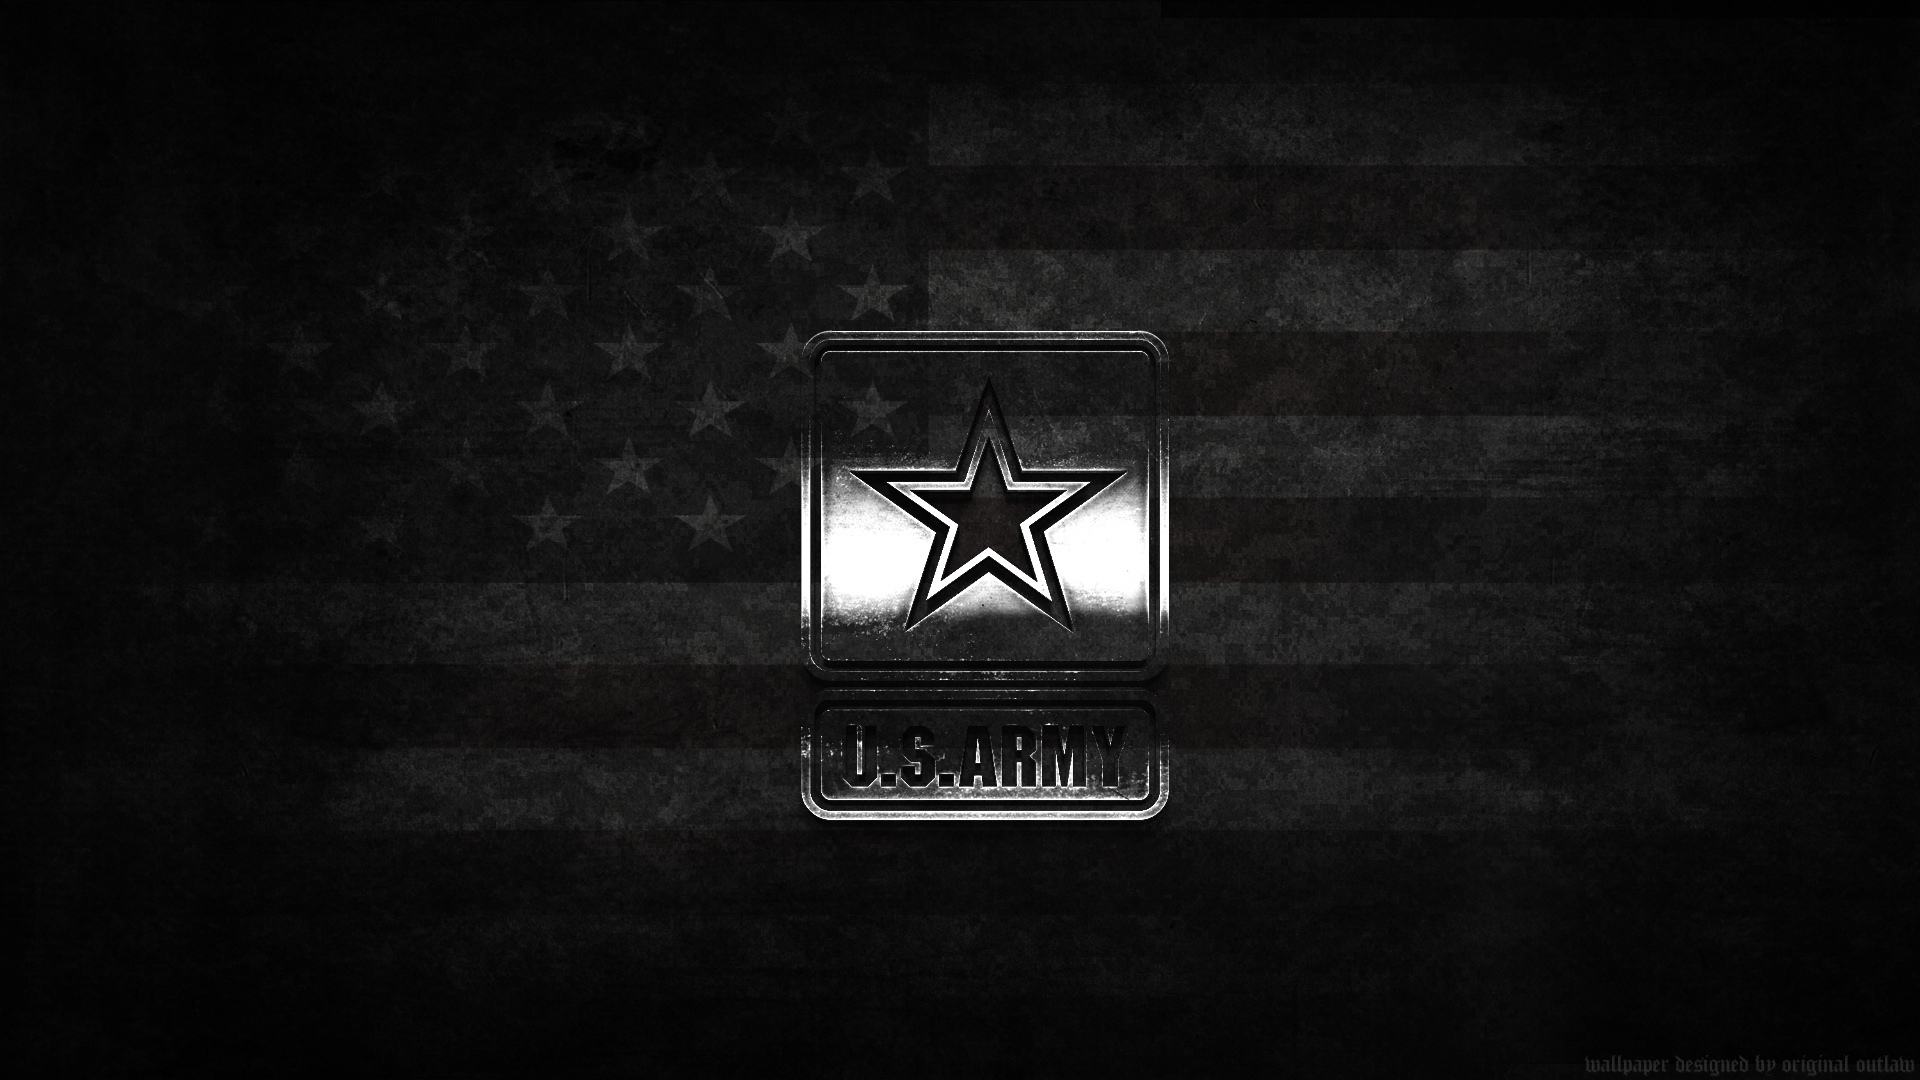 US Army Computer Backgrounds Desktop Image 1920x1080